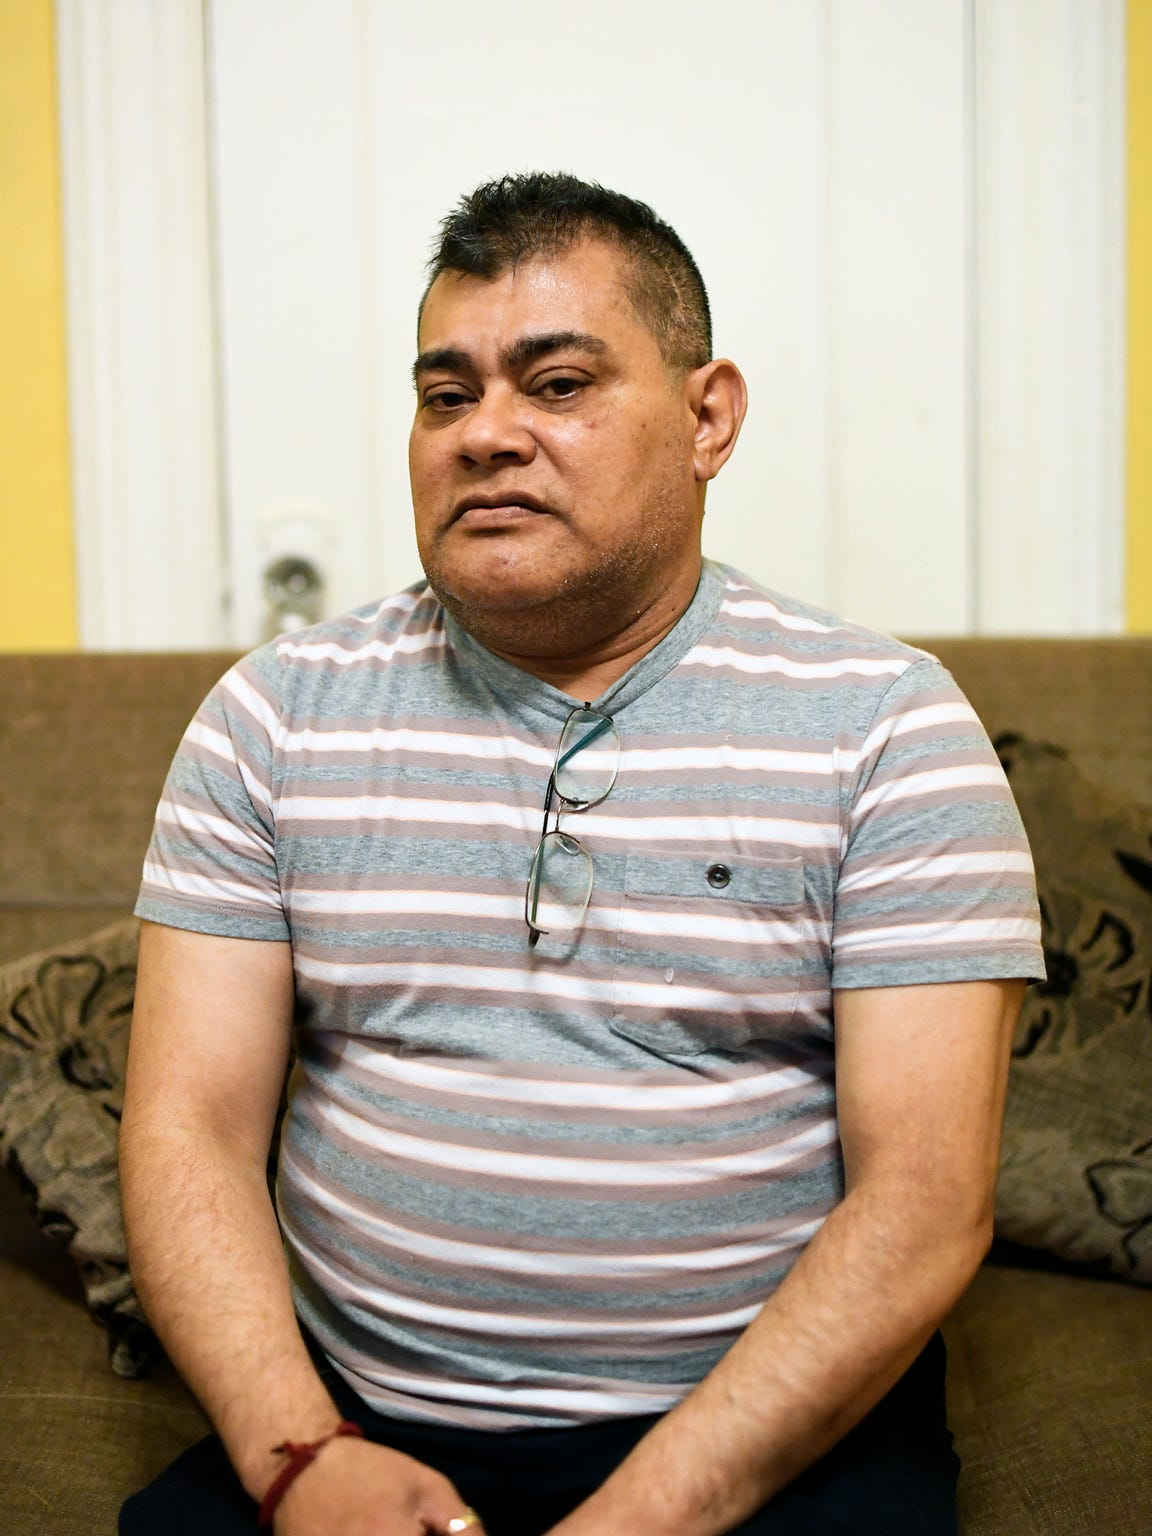 Ricardo Aviles, an immigrant from Honduras, has worked